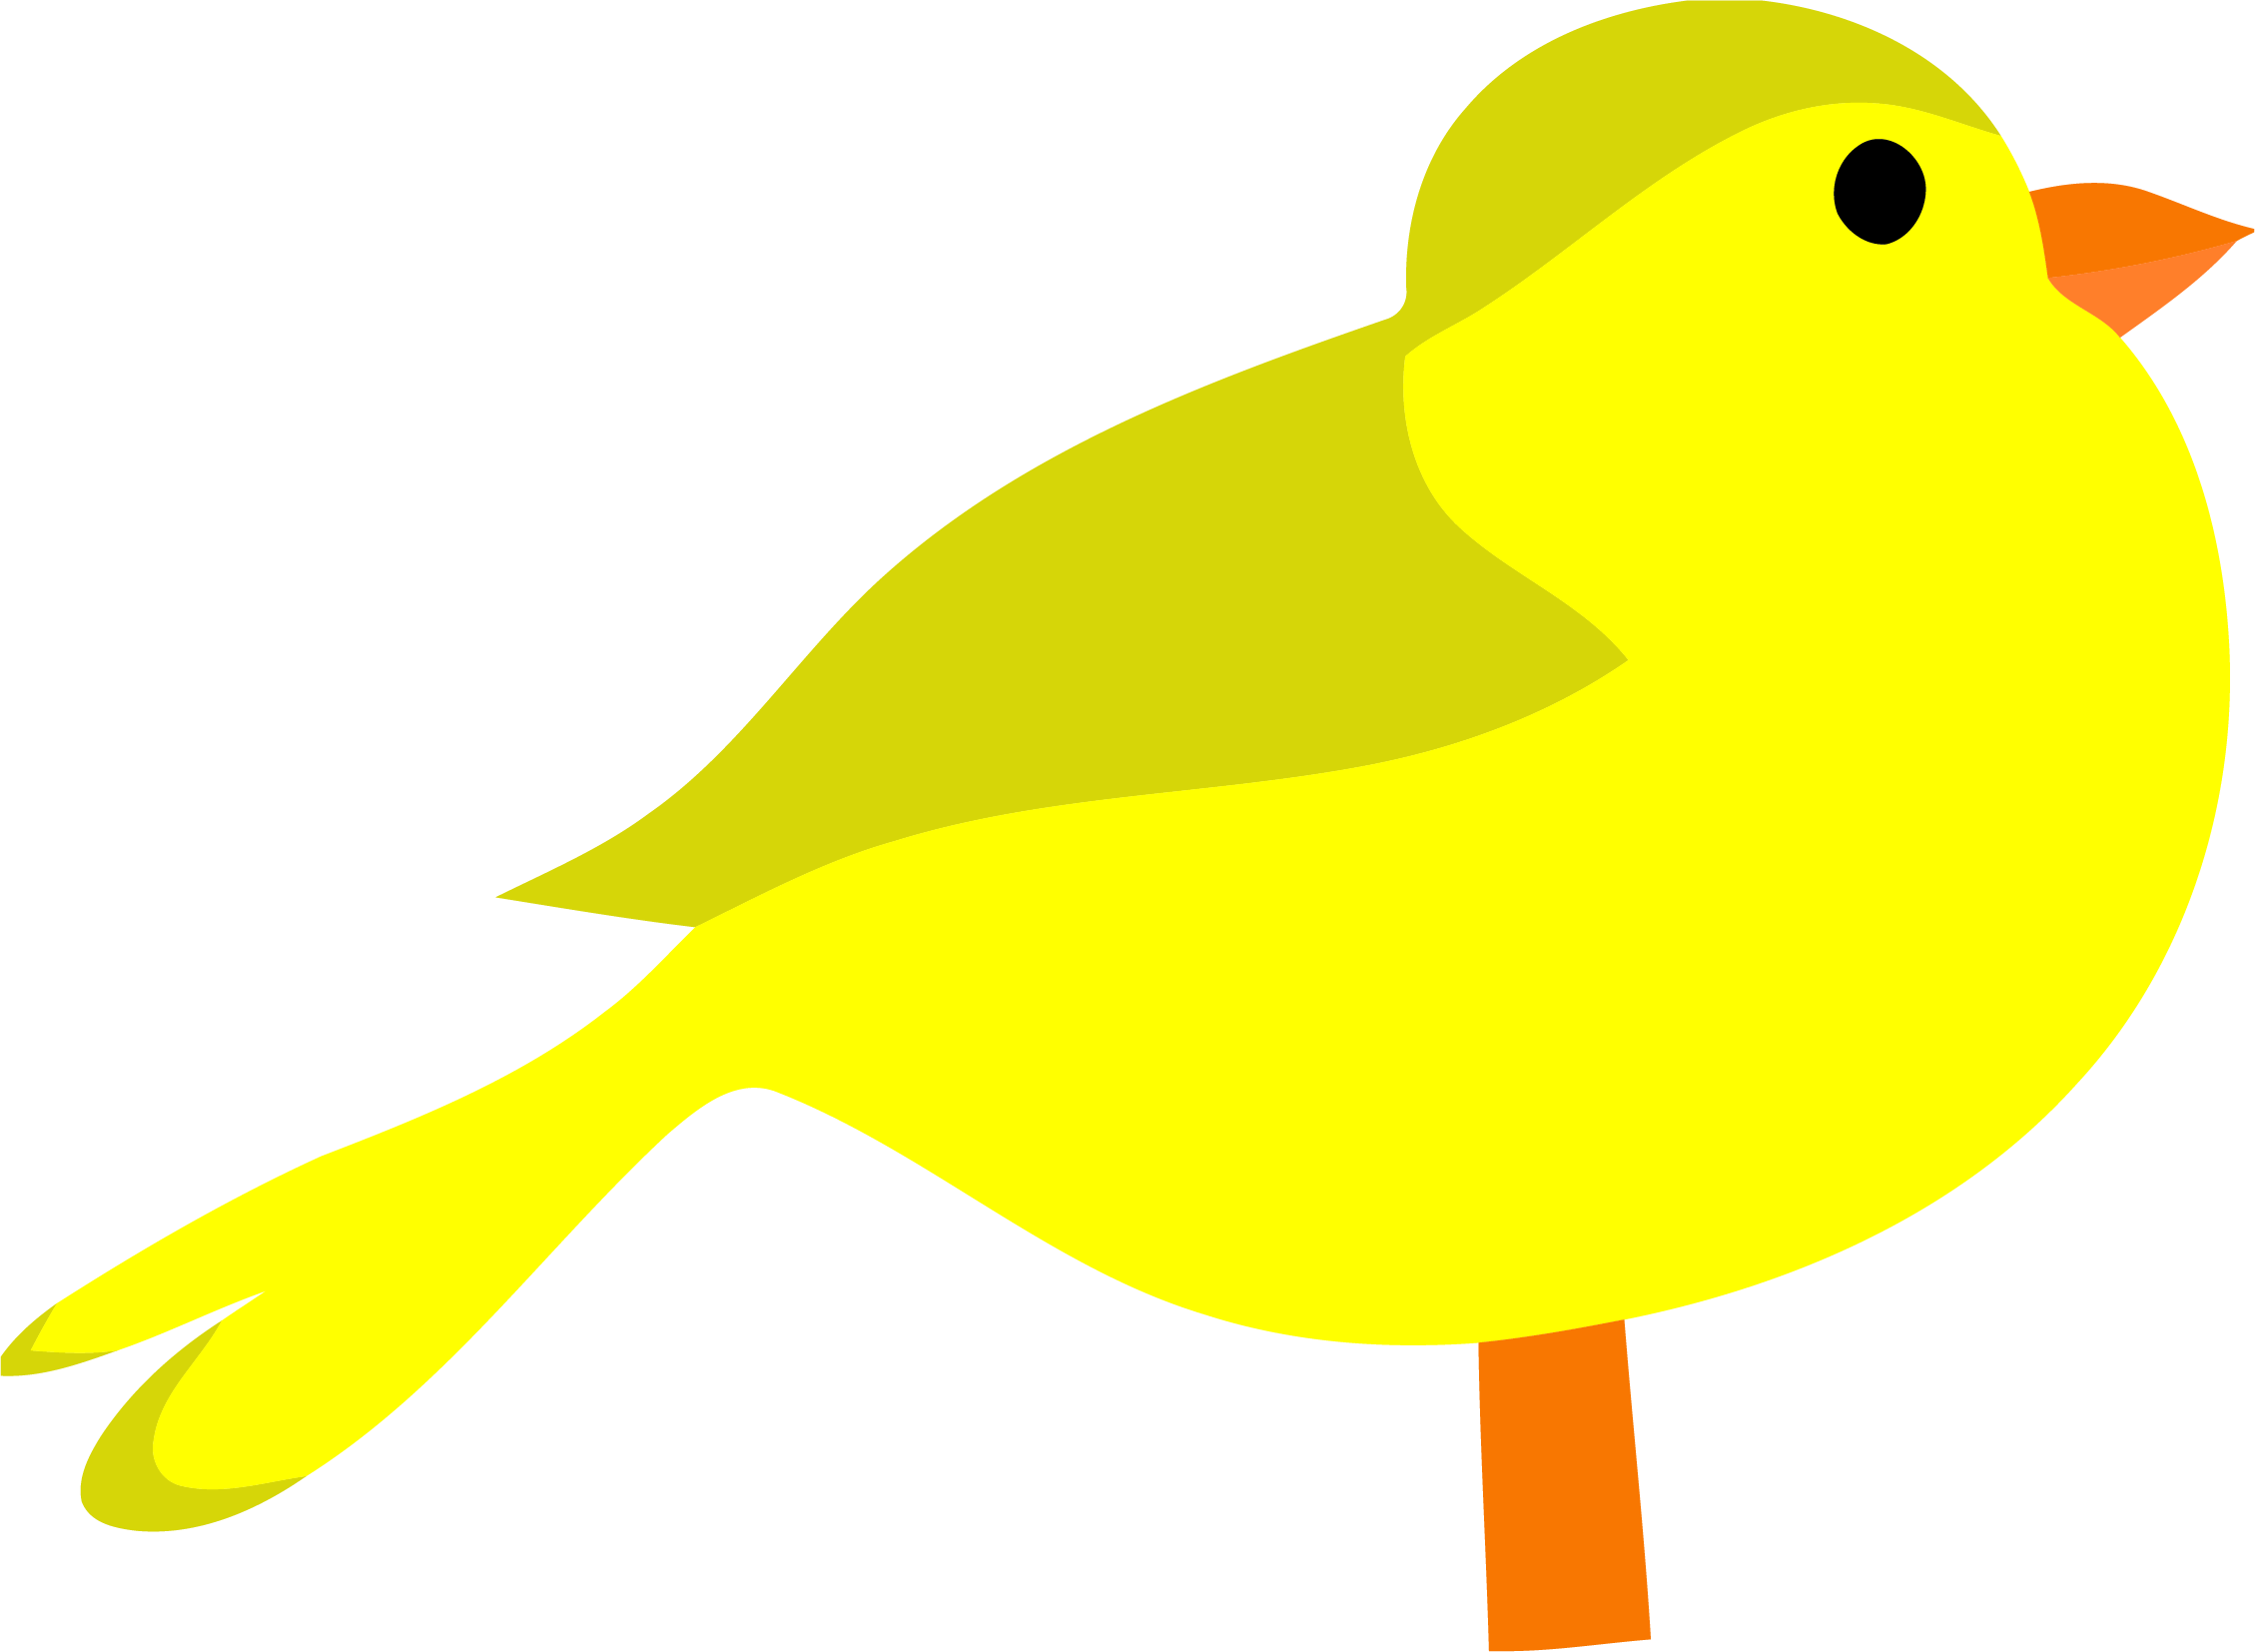 Clipart birds yellow. Bird png clipartly comclipartly